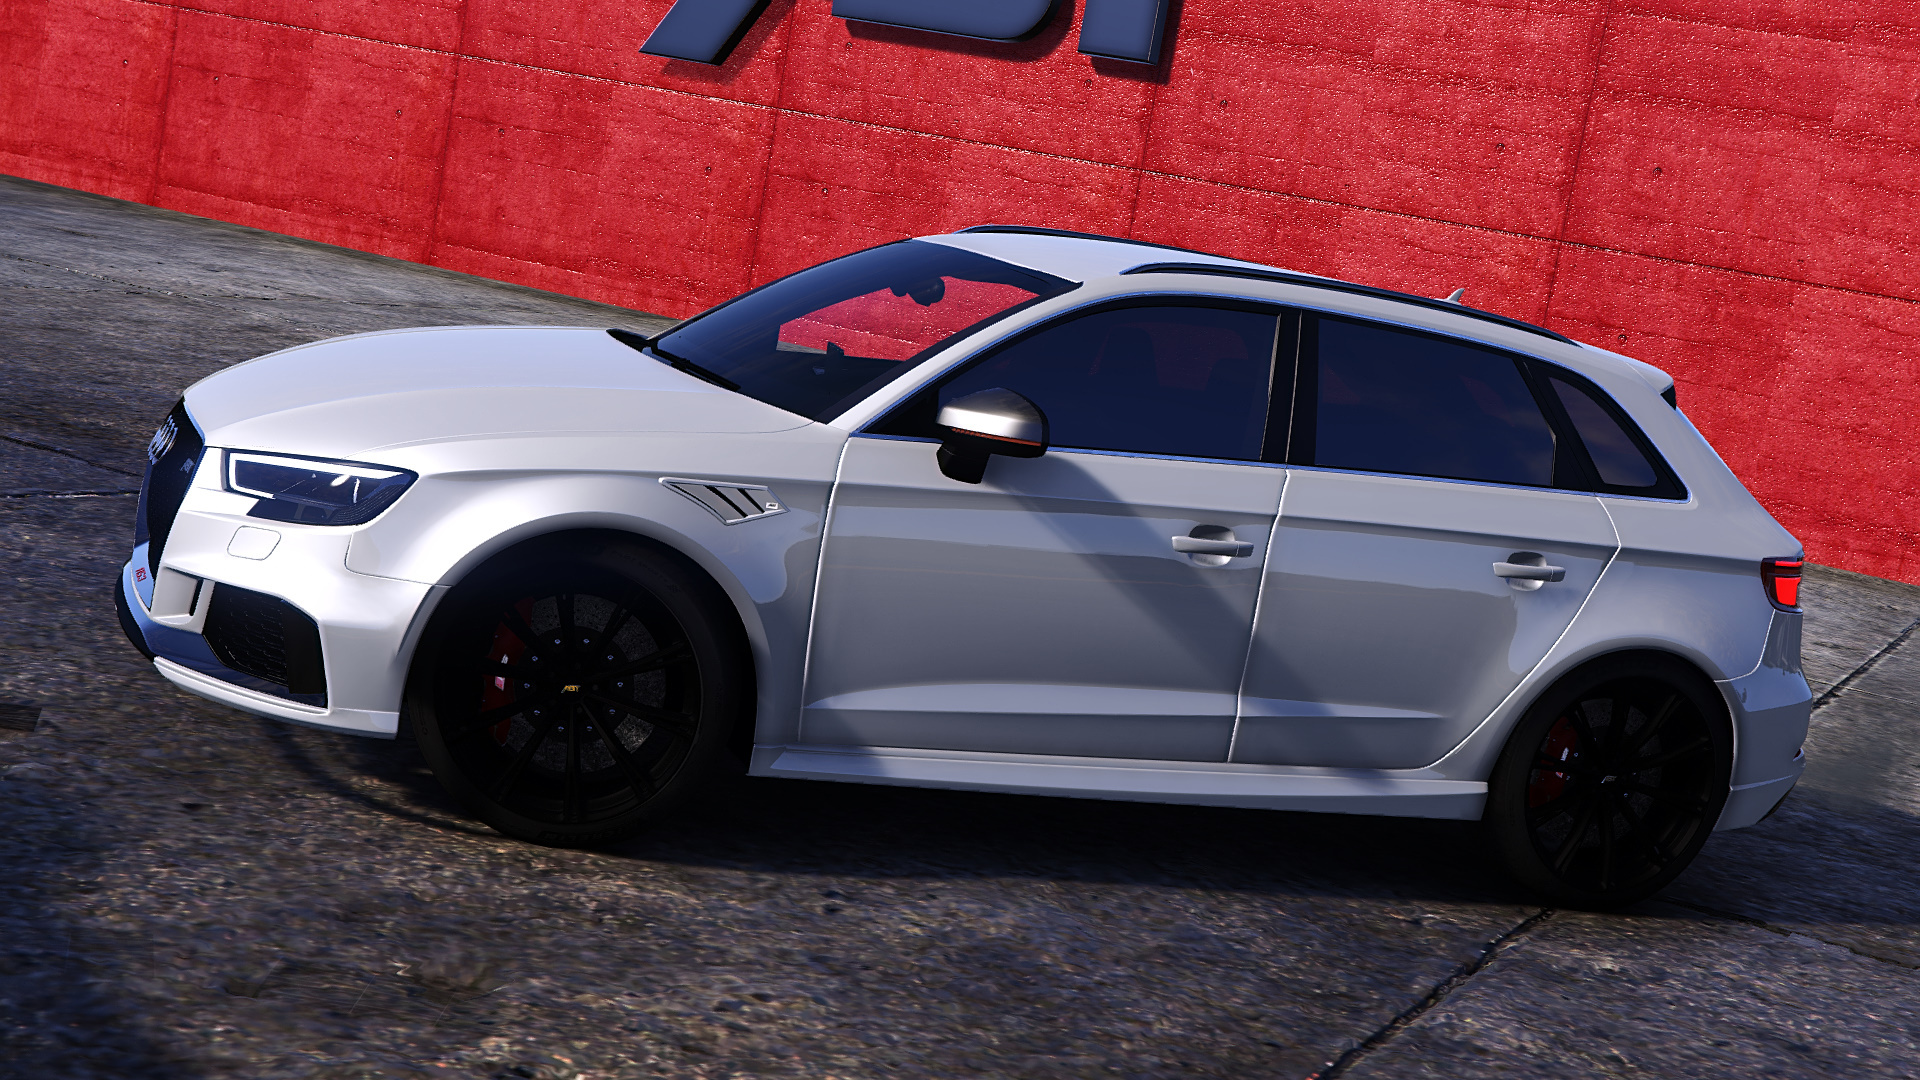 Audi A3 Exterior Mods >> Audi rs3 Sportback 2018 [Add-on/Tuning/ABT] - GTA5-Mods.com